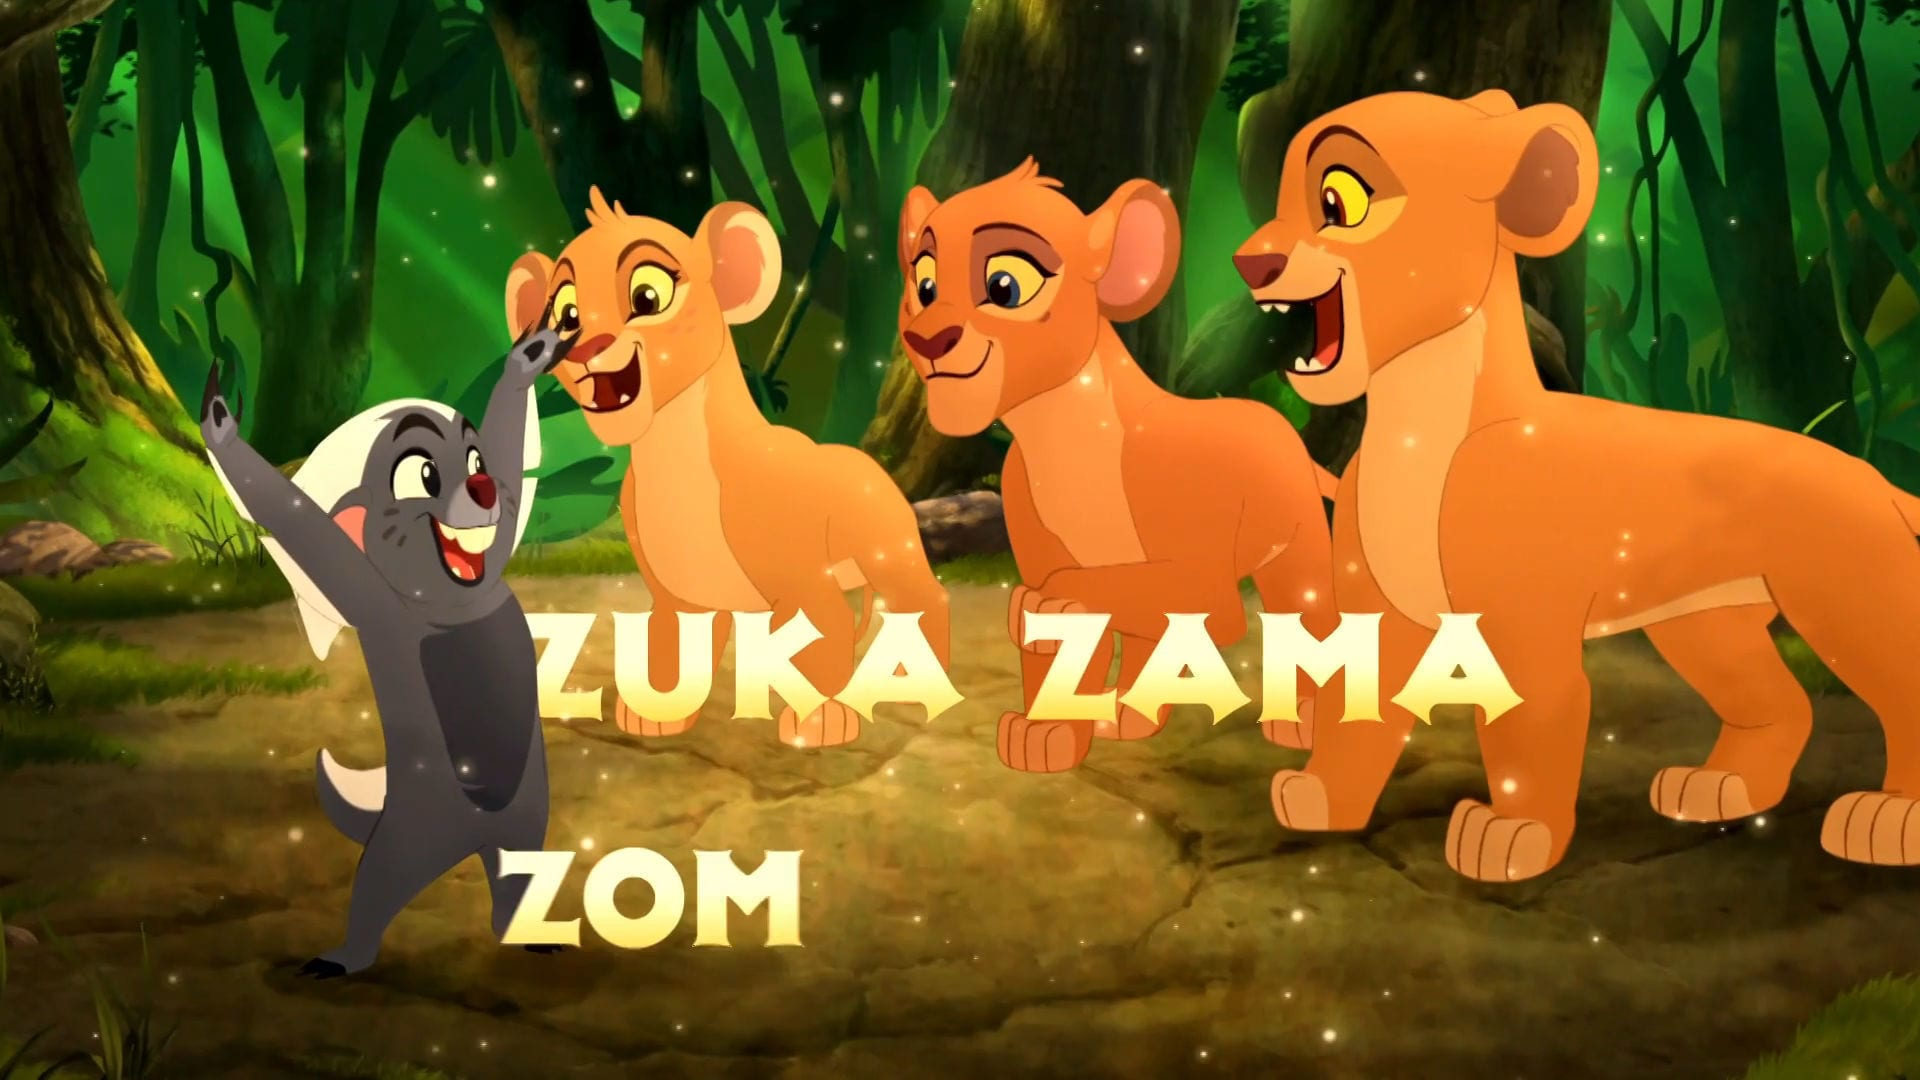 The Lion Guard: Return of the Roar - Get Ready to Zuka Zama!